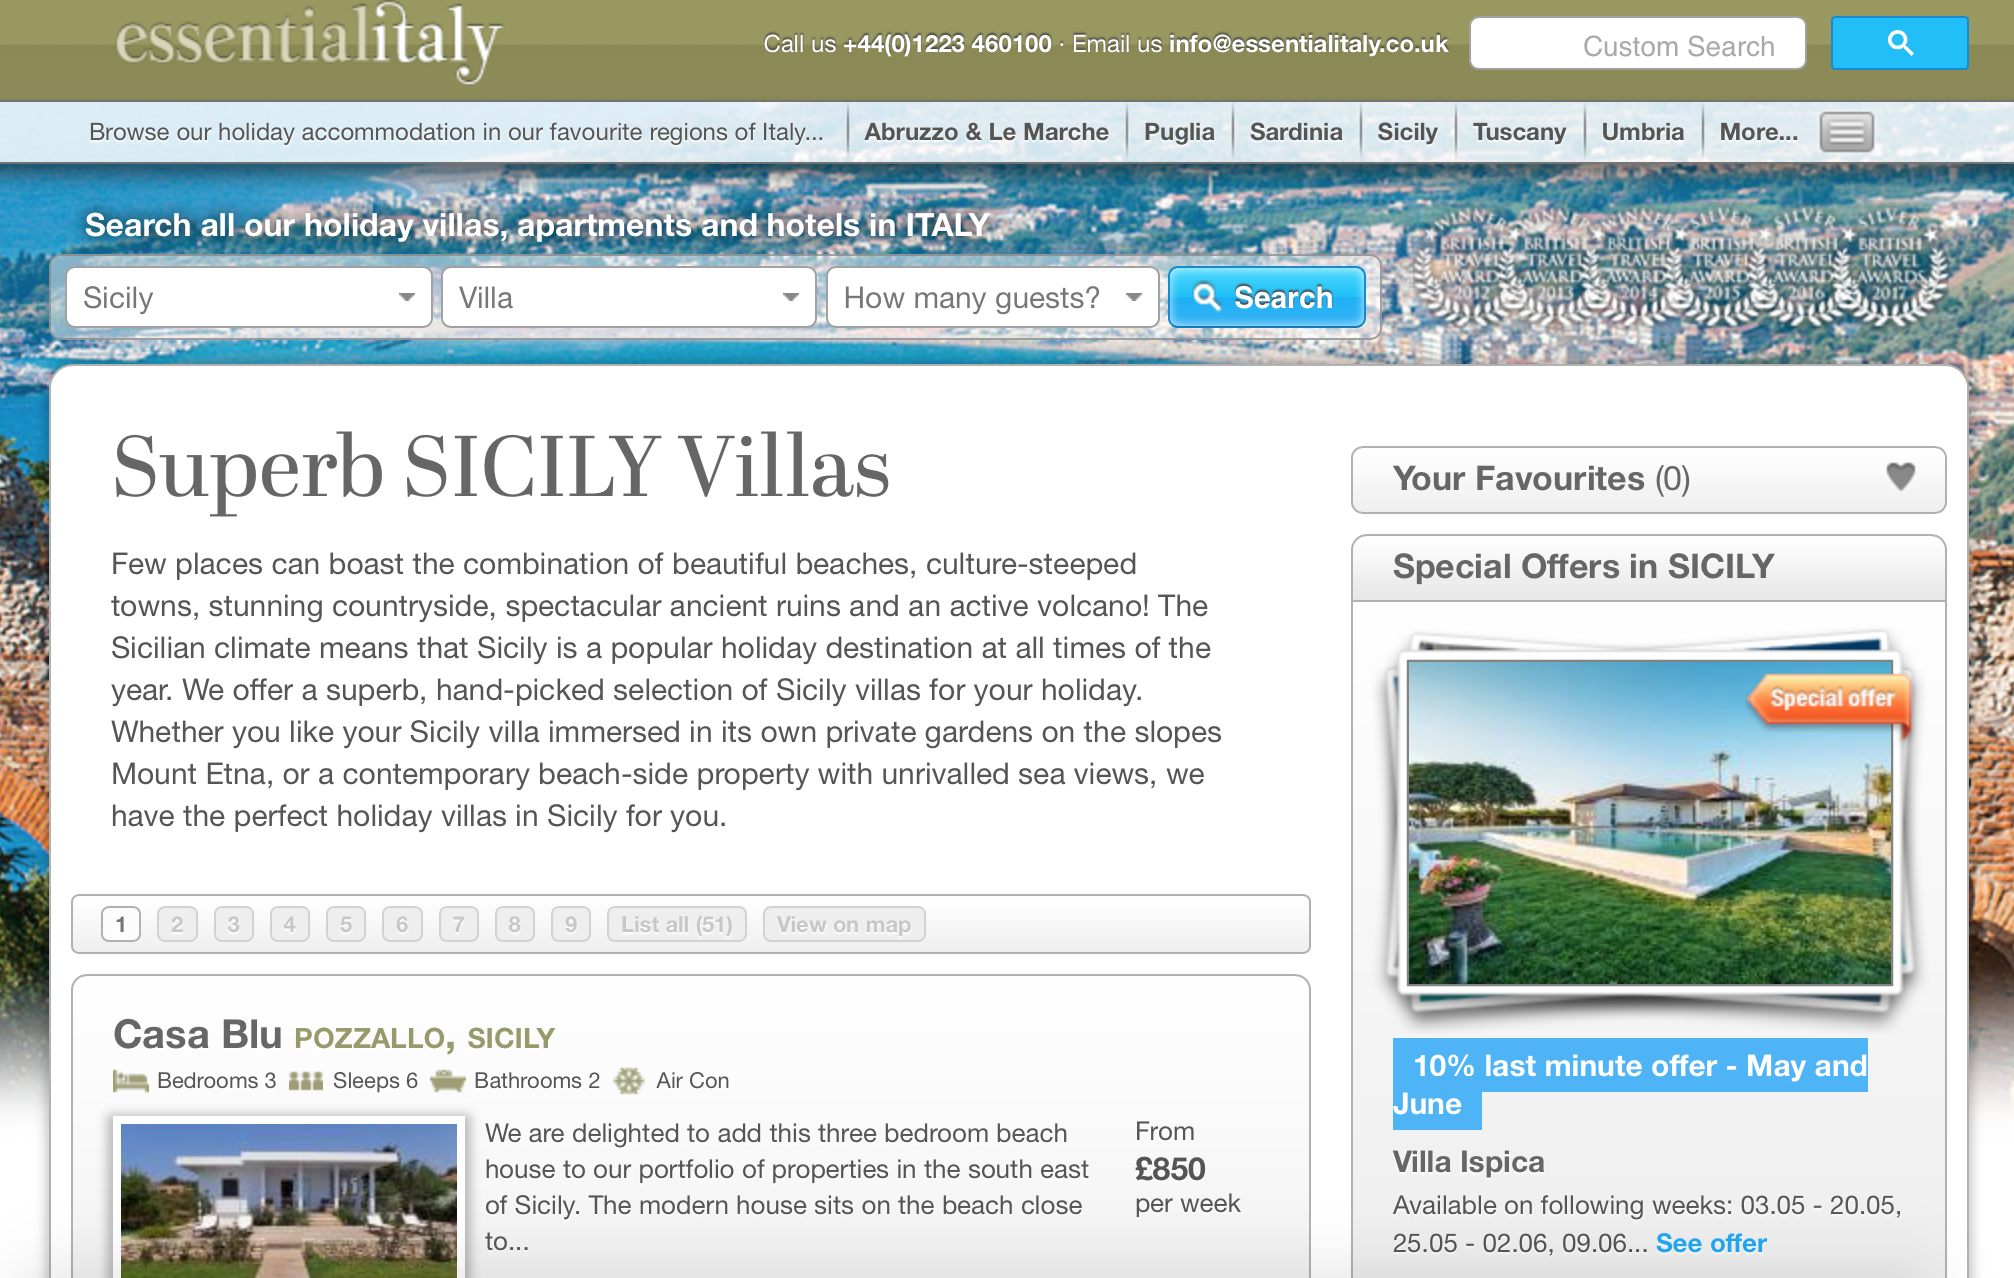 Booking an Essential Italy villa in Sicily